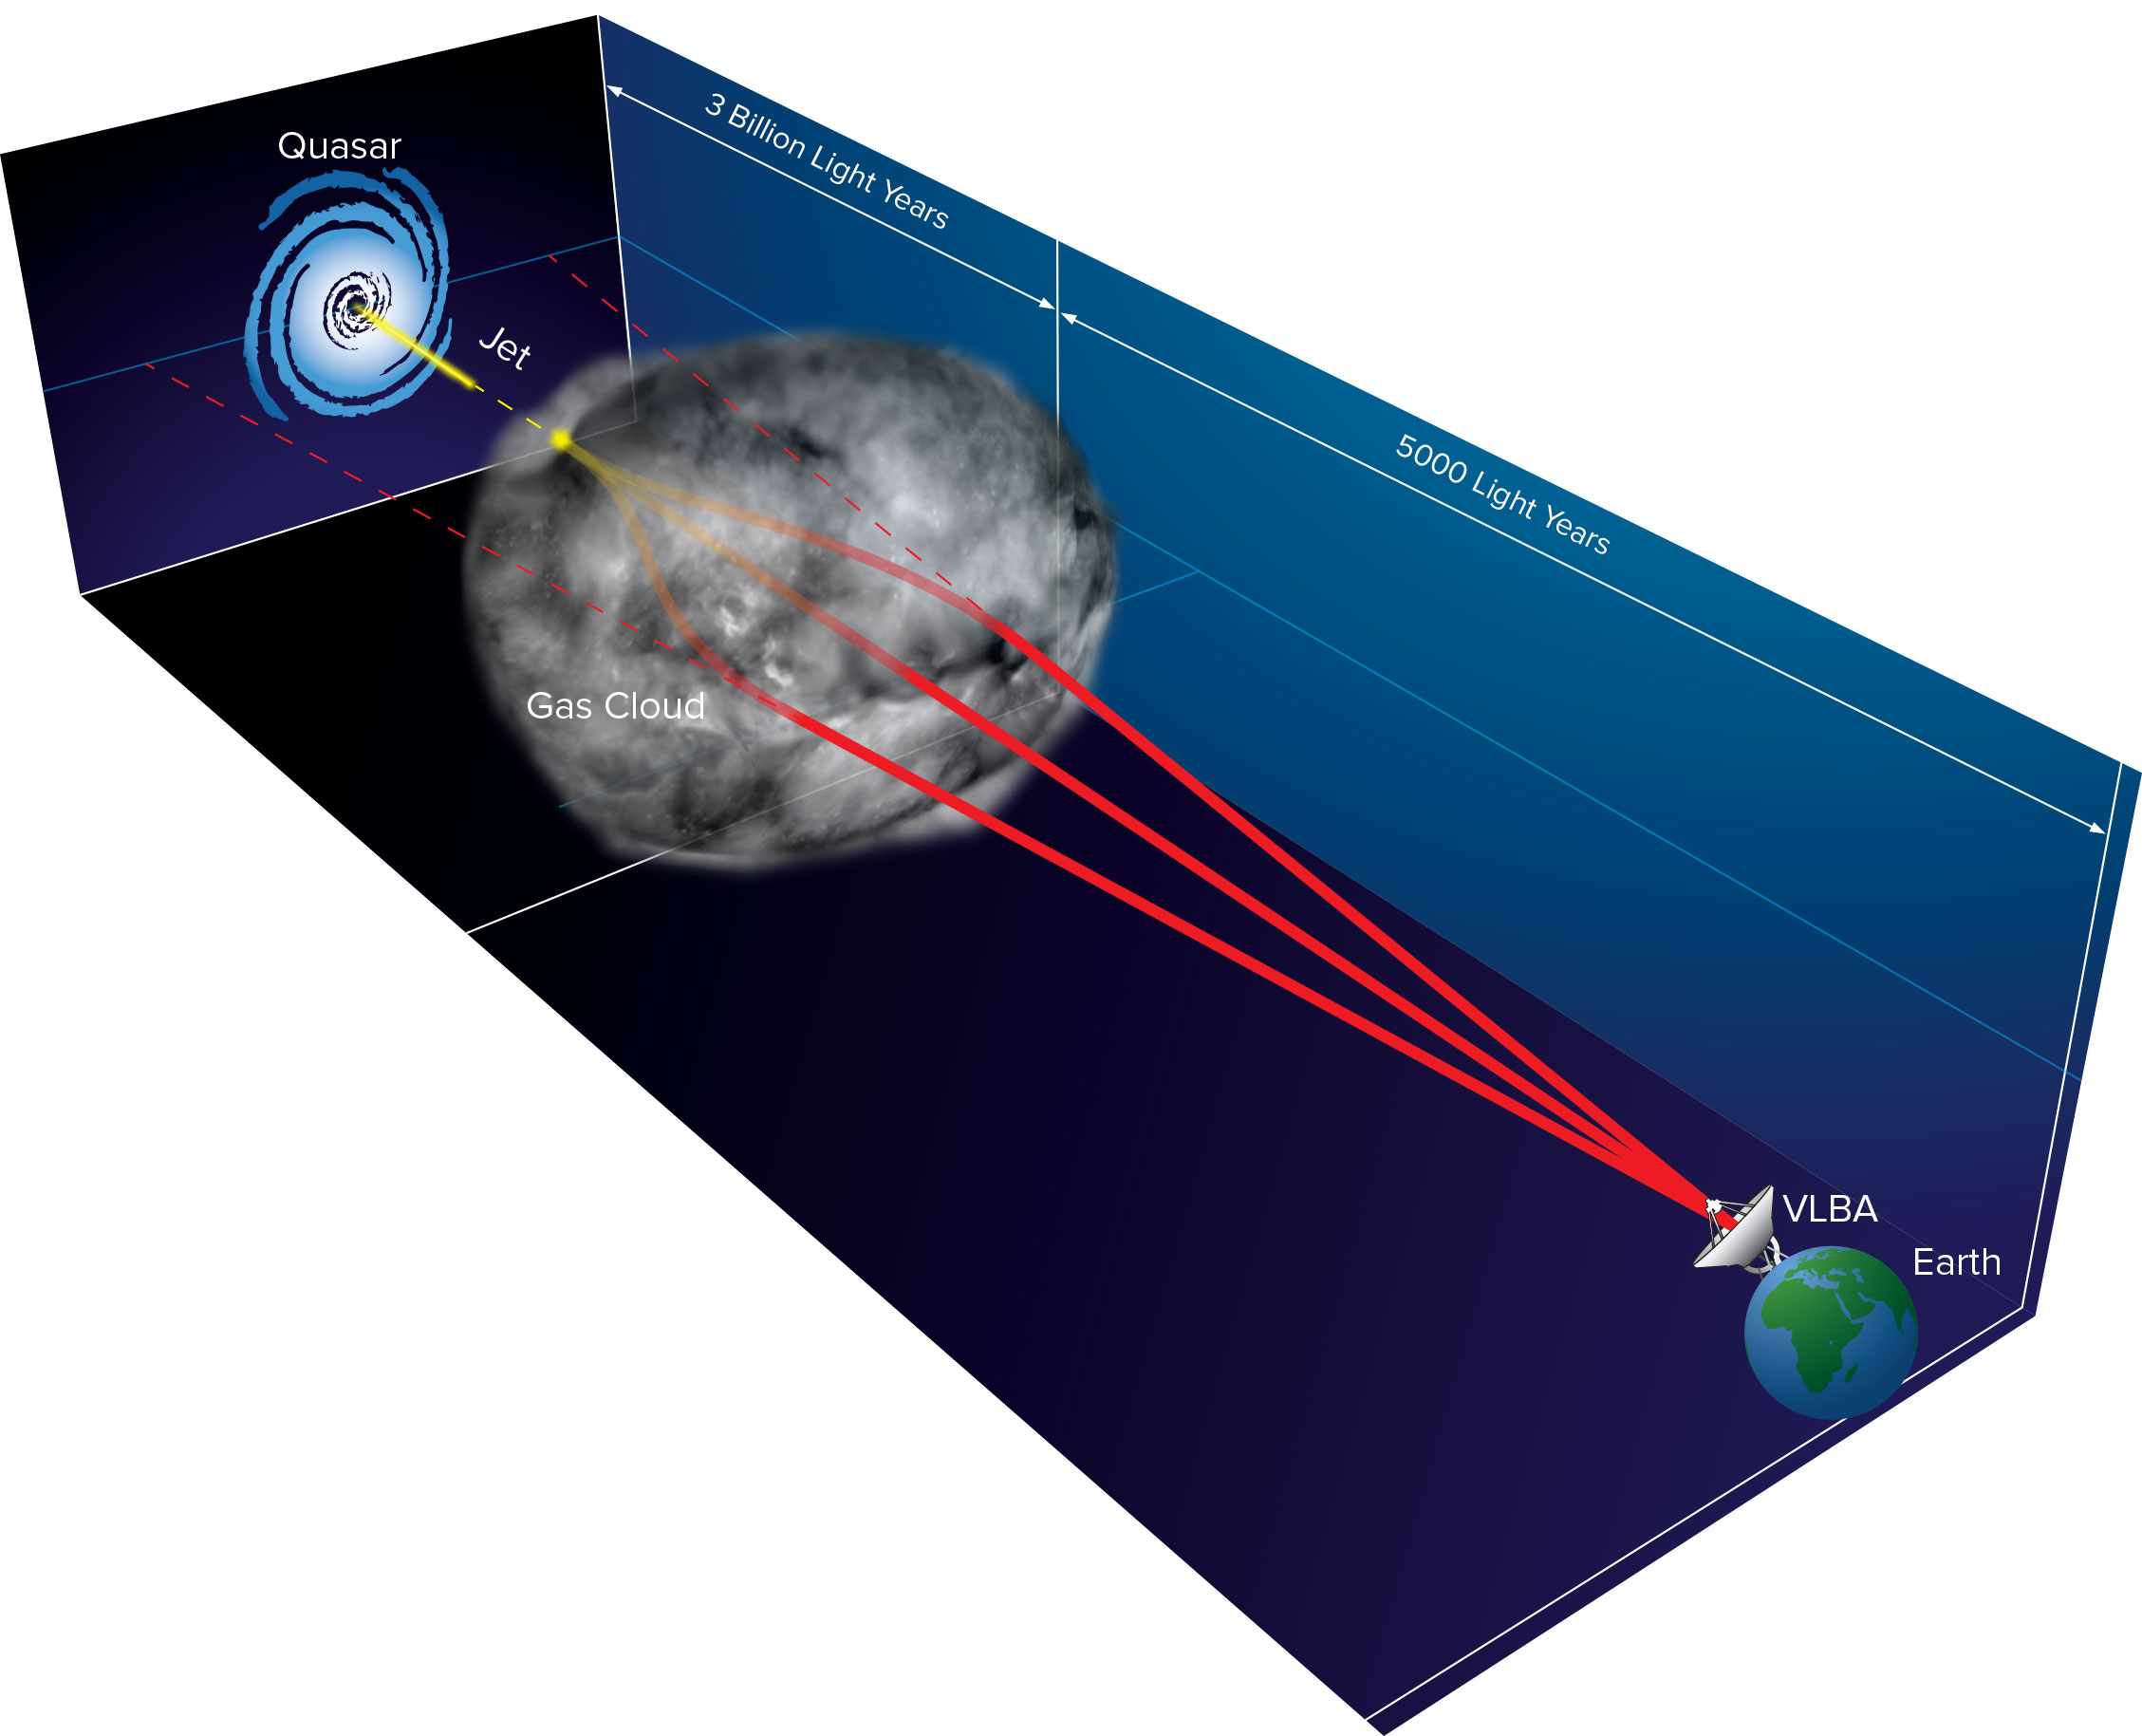 milky way gas cloud causes multiple images of distant quasar rh phys org